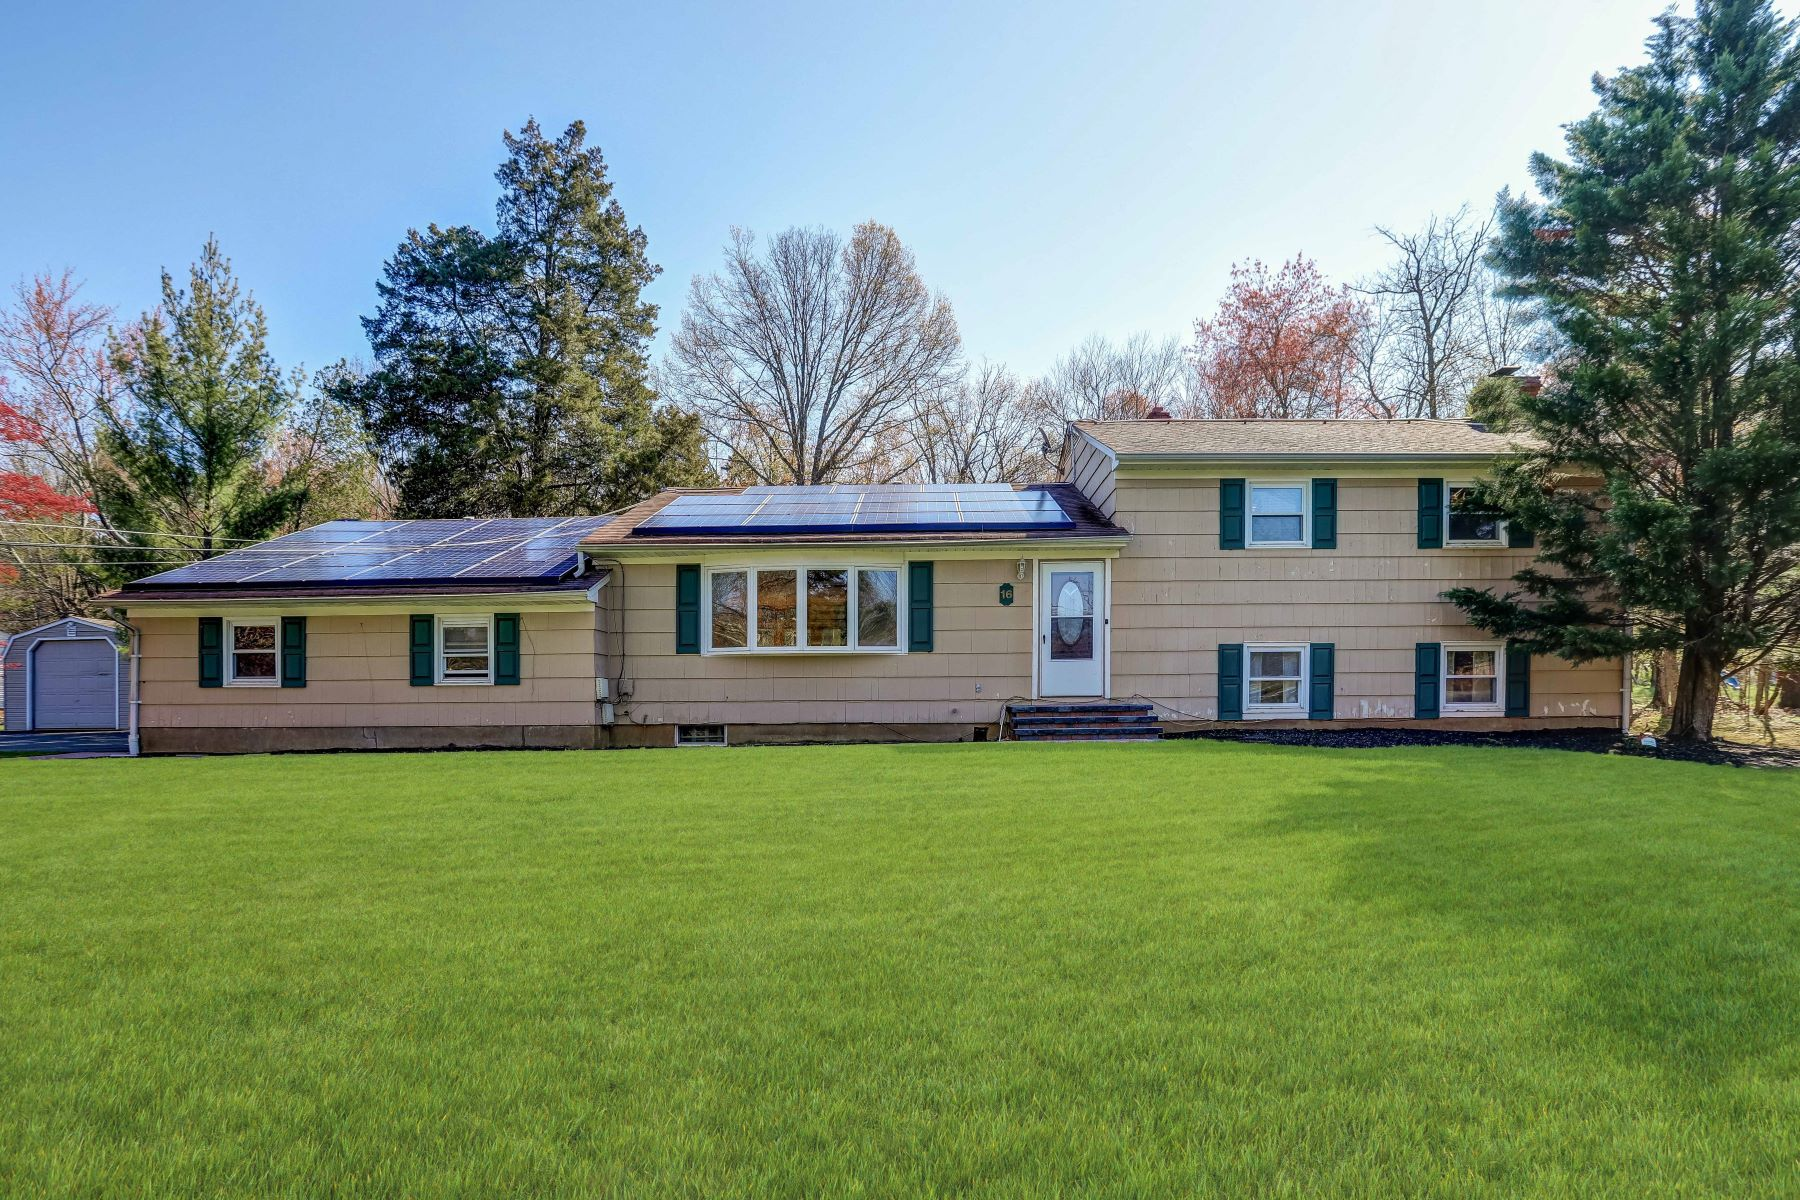 Single Family Homes for Sale at Spacious and Bright 16 Crestwood Drive Bridgewater, New Jersey 08807 United States